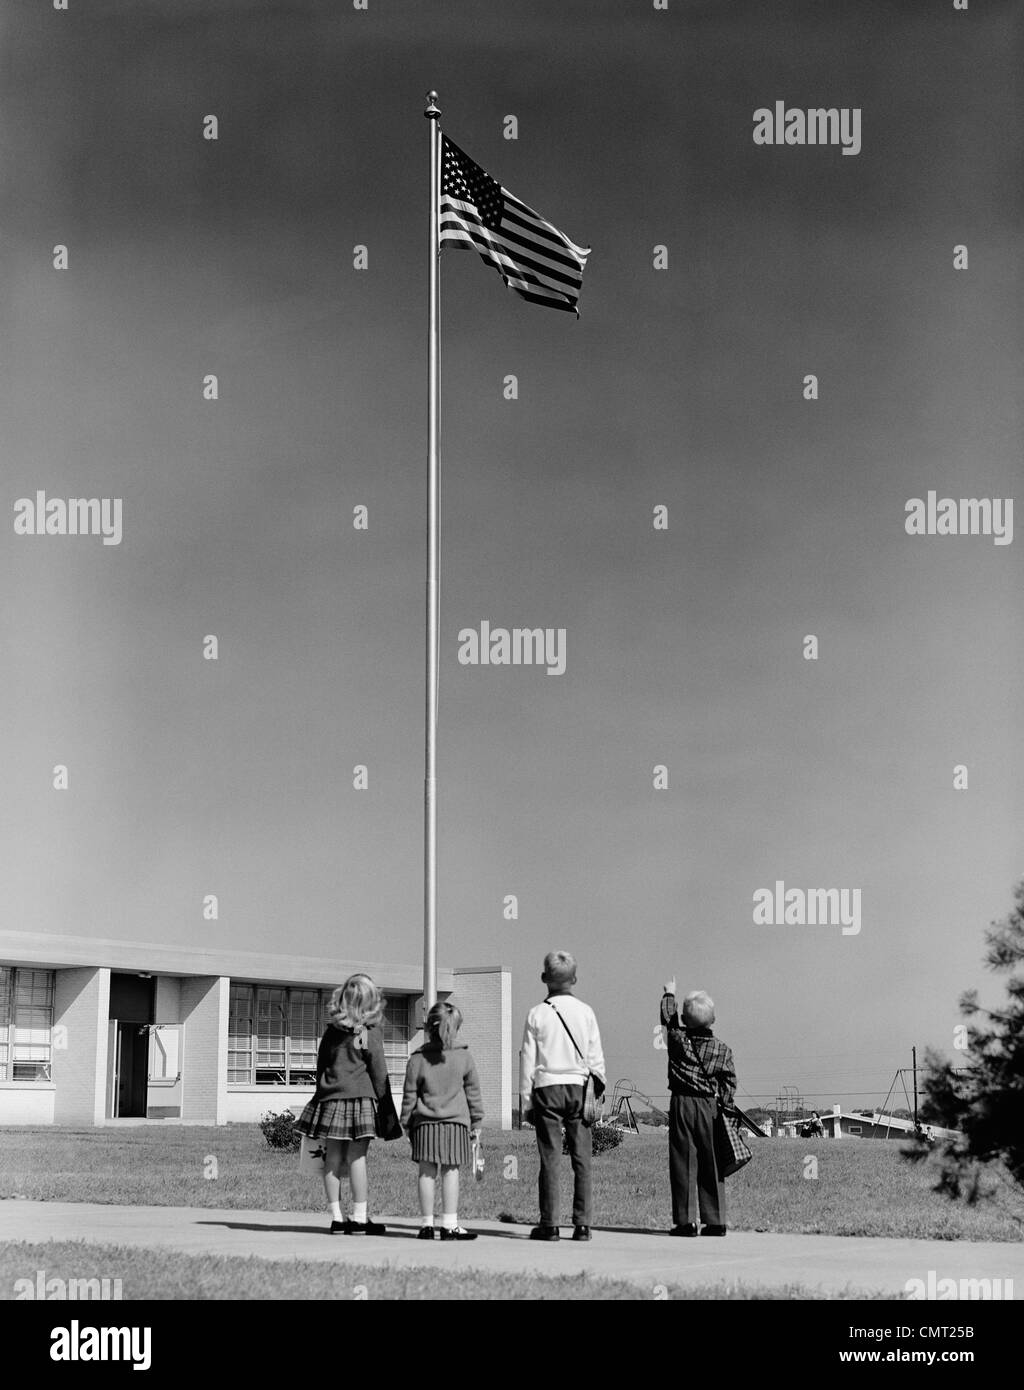 1960s GROUP 4 SCHOOL CHILDREN LOOKING UP AT AMERICAN FLAG - Stock Image